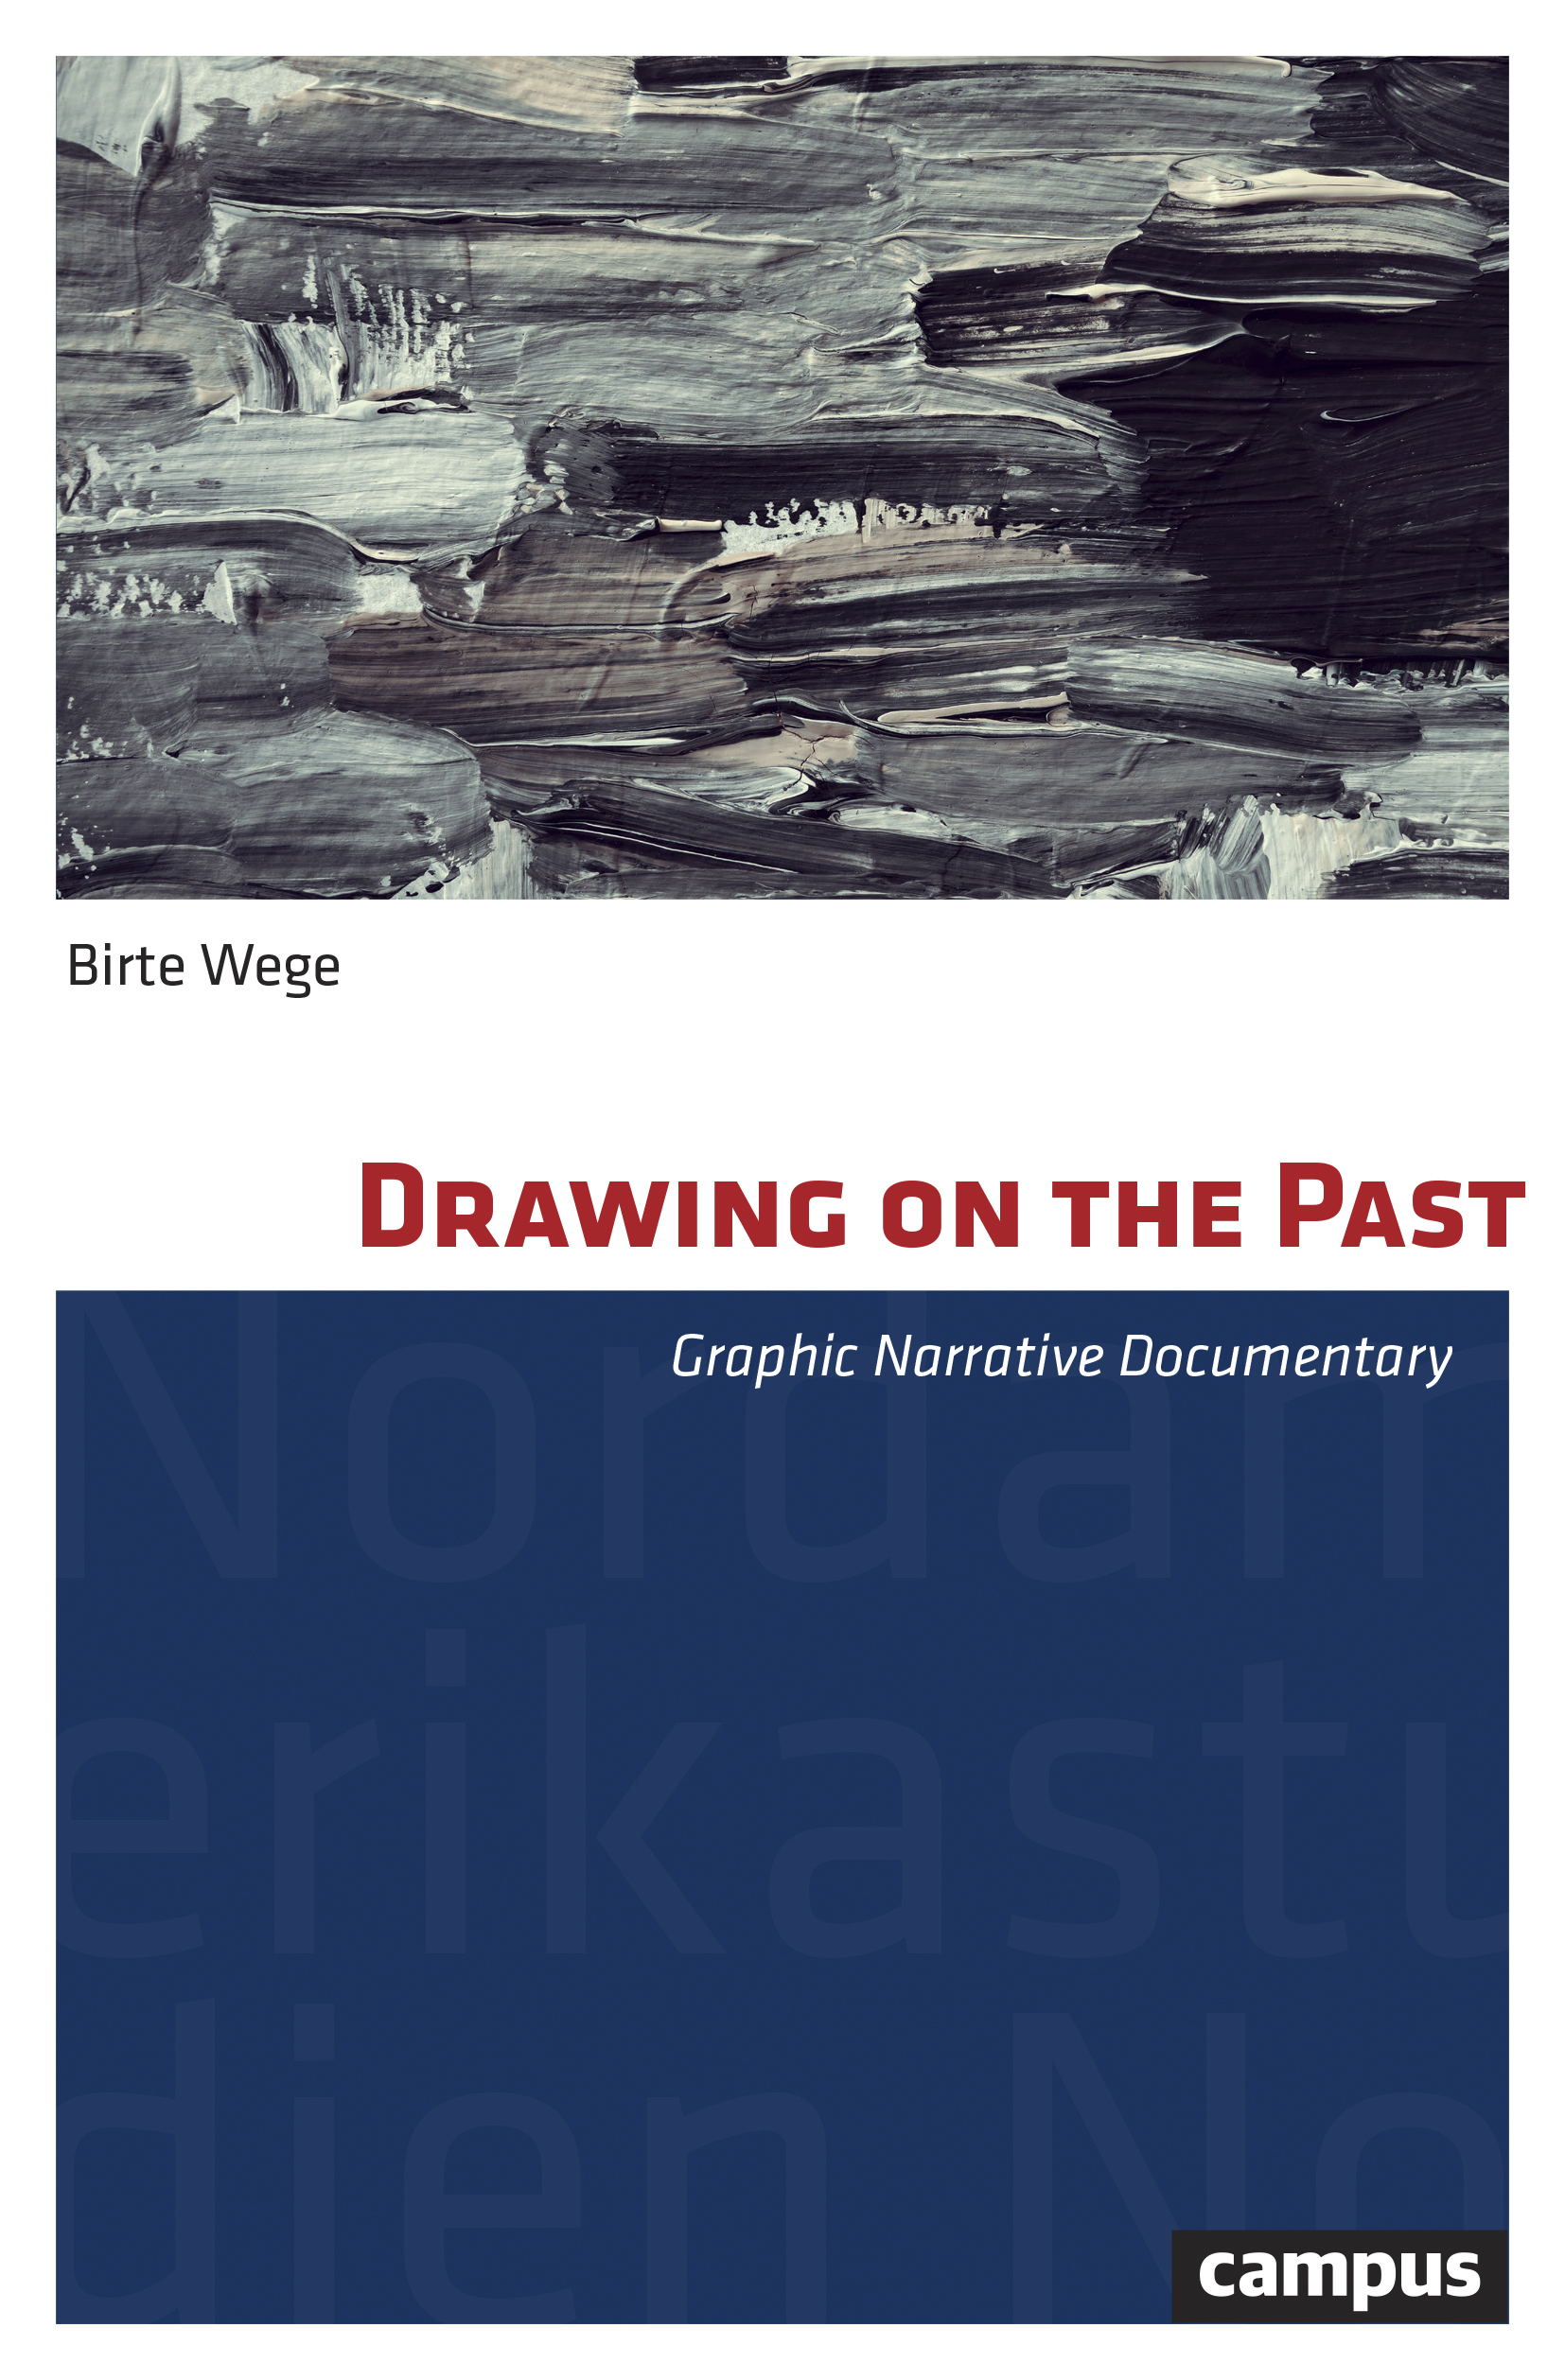 Drawing on the Past: Graphic Narrative Documentary